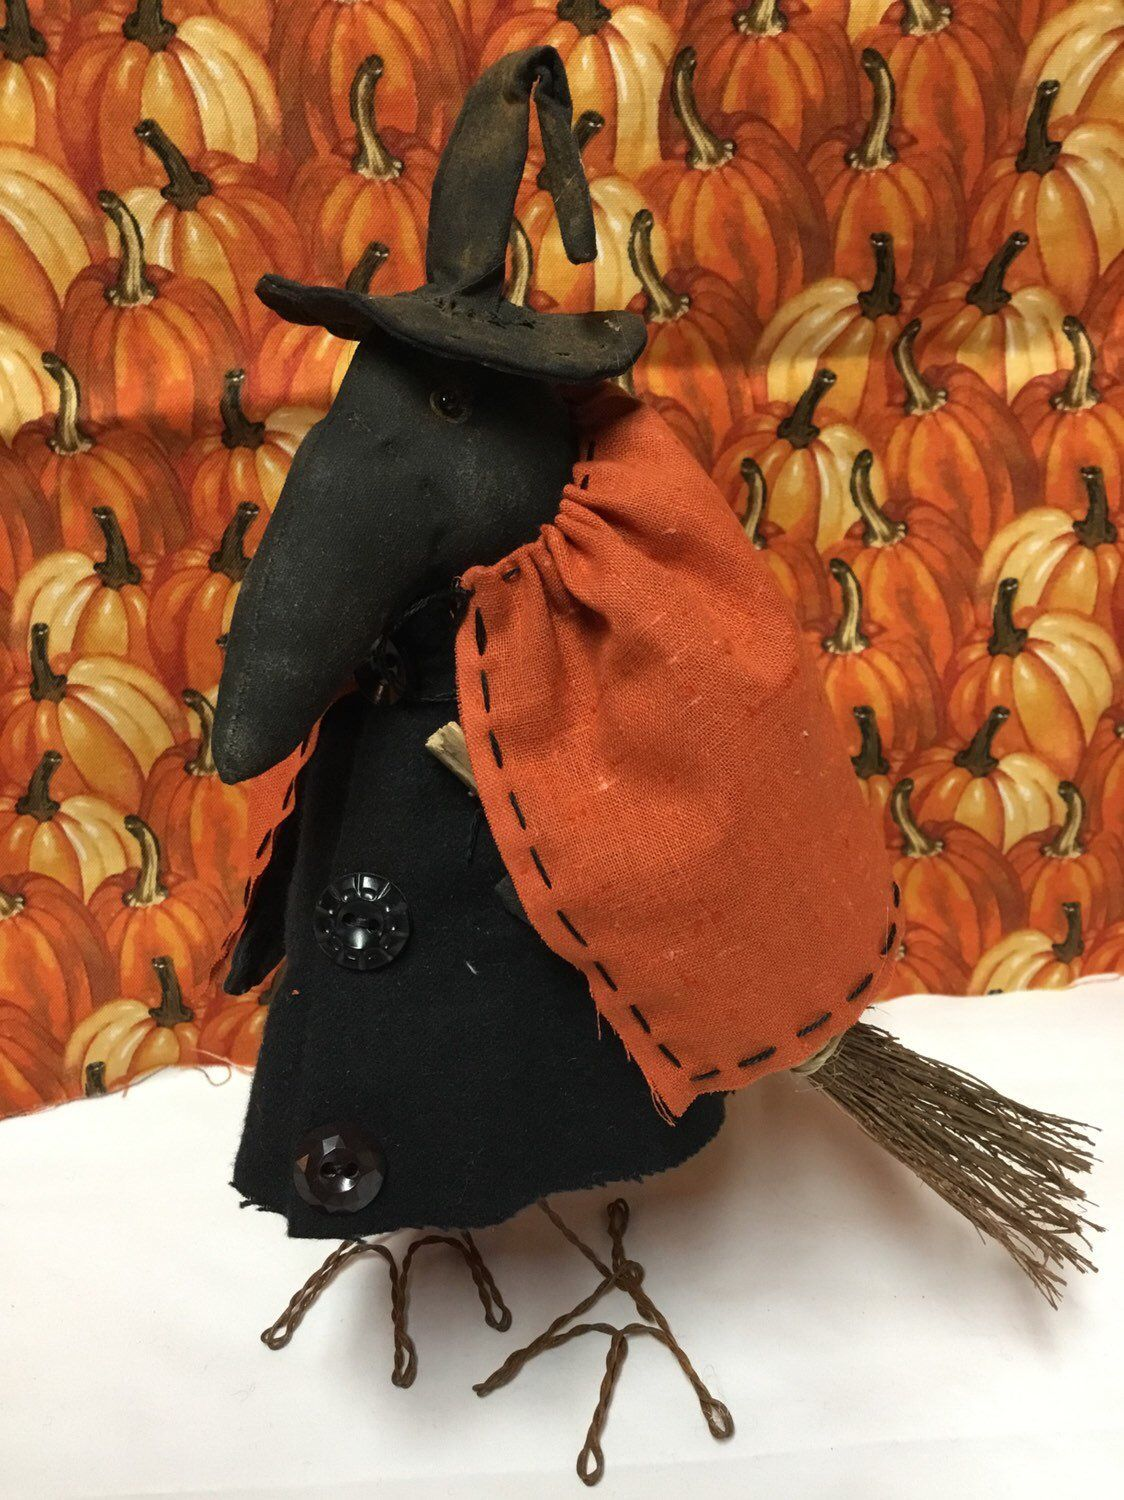 26155aa6 Excited to share this item from my #etsy shop: Primitive Halloween Witch  Lena Crow ready to ship #homedecor #halloween #giftforher #witch #Etsy # EtsyShop ...